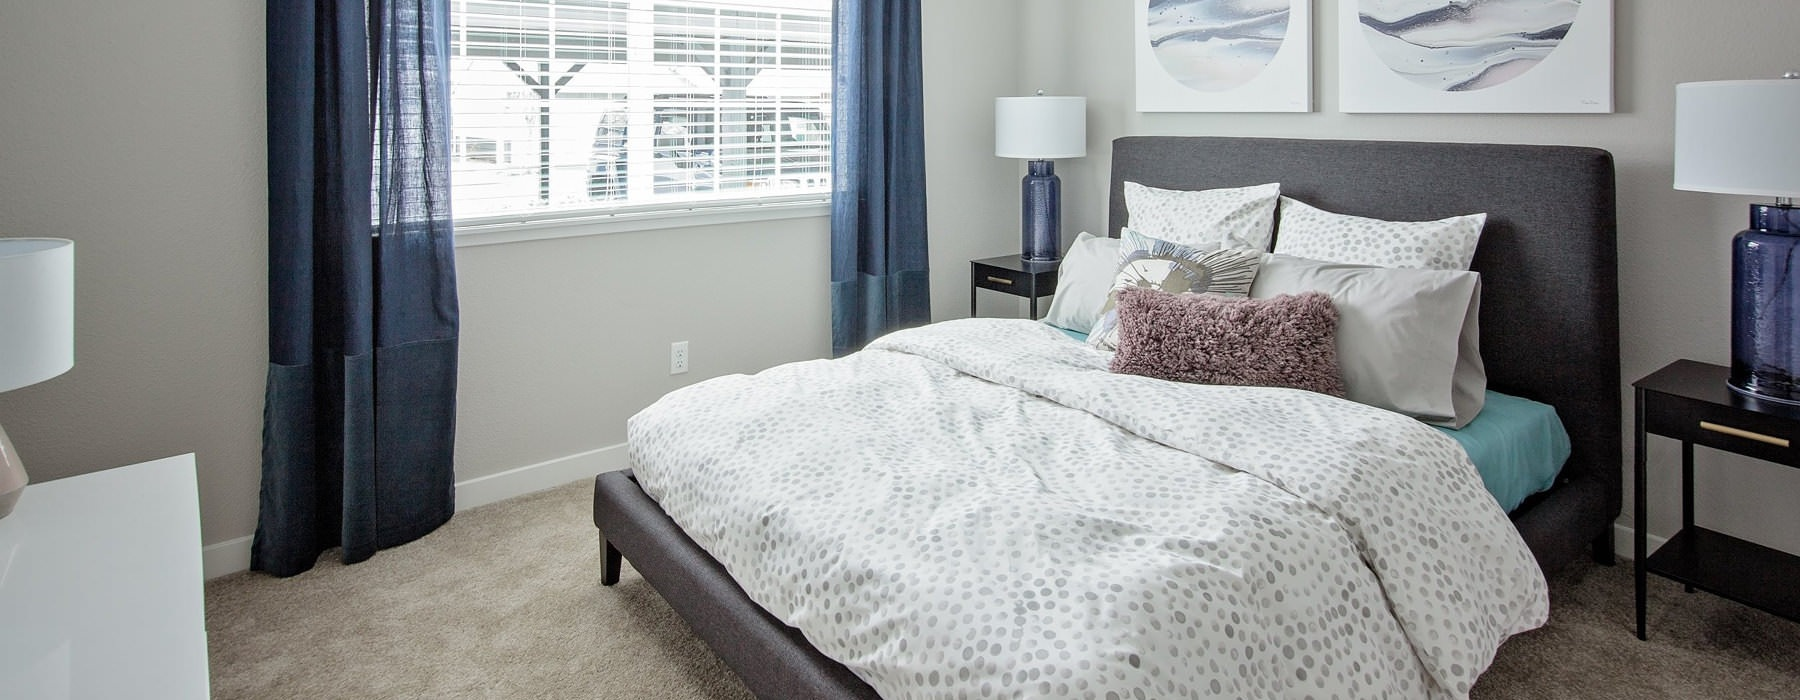 sizable bedroom with light fixture and wide windows